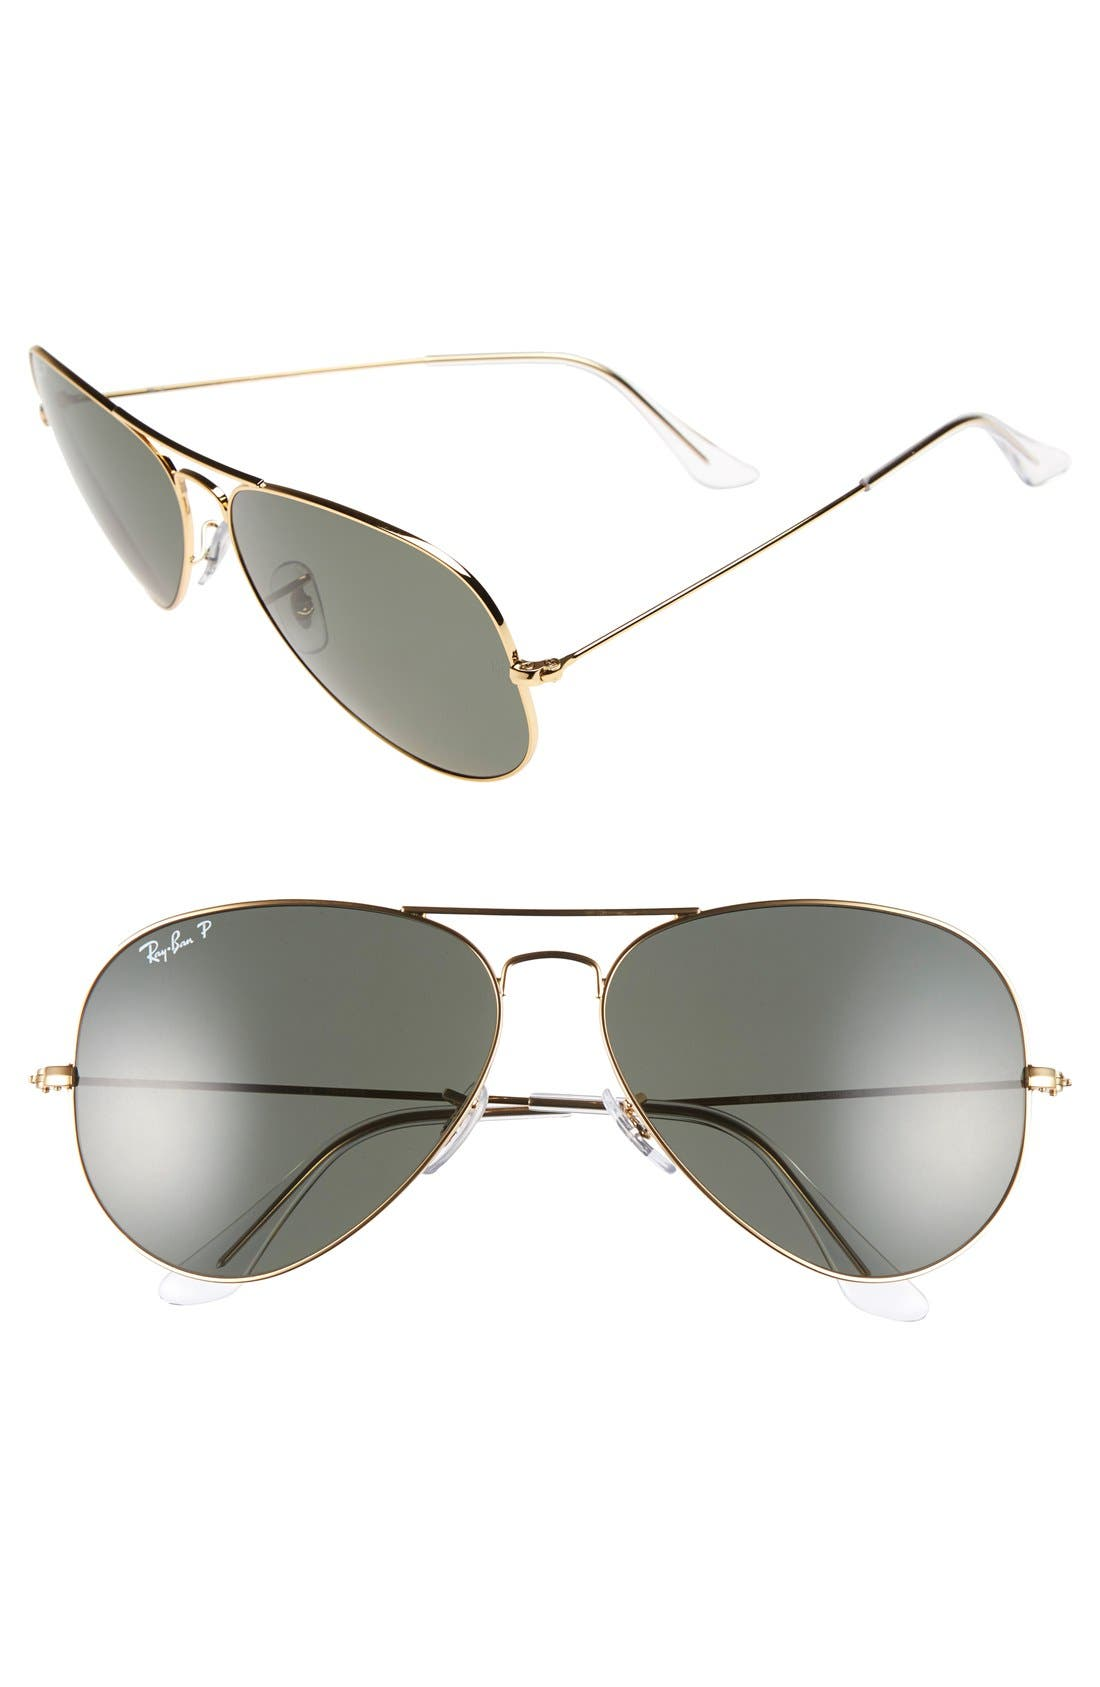 Ray-Ban 'Aviator' Polarized 62mm Sunglasses